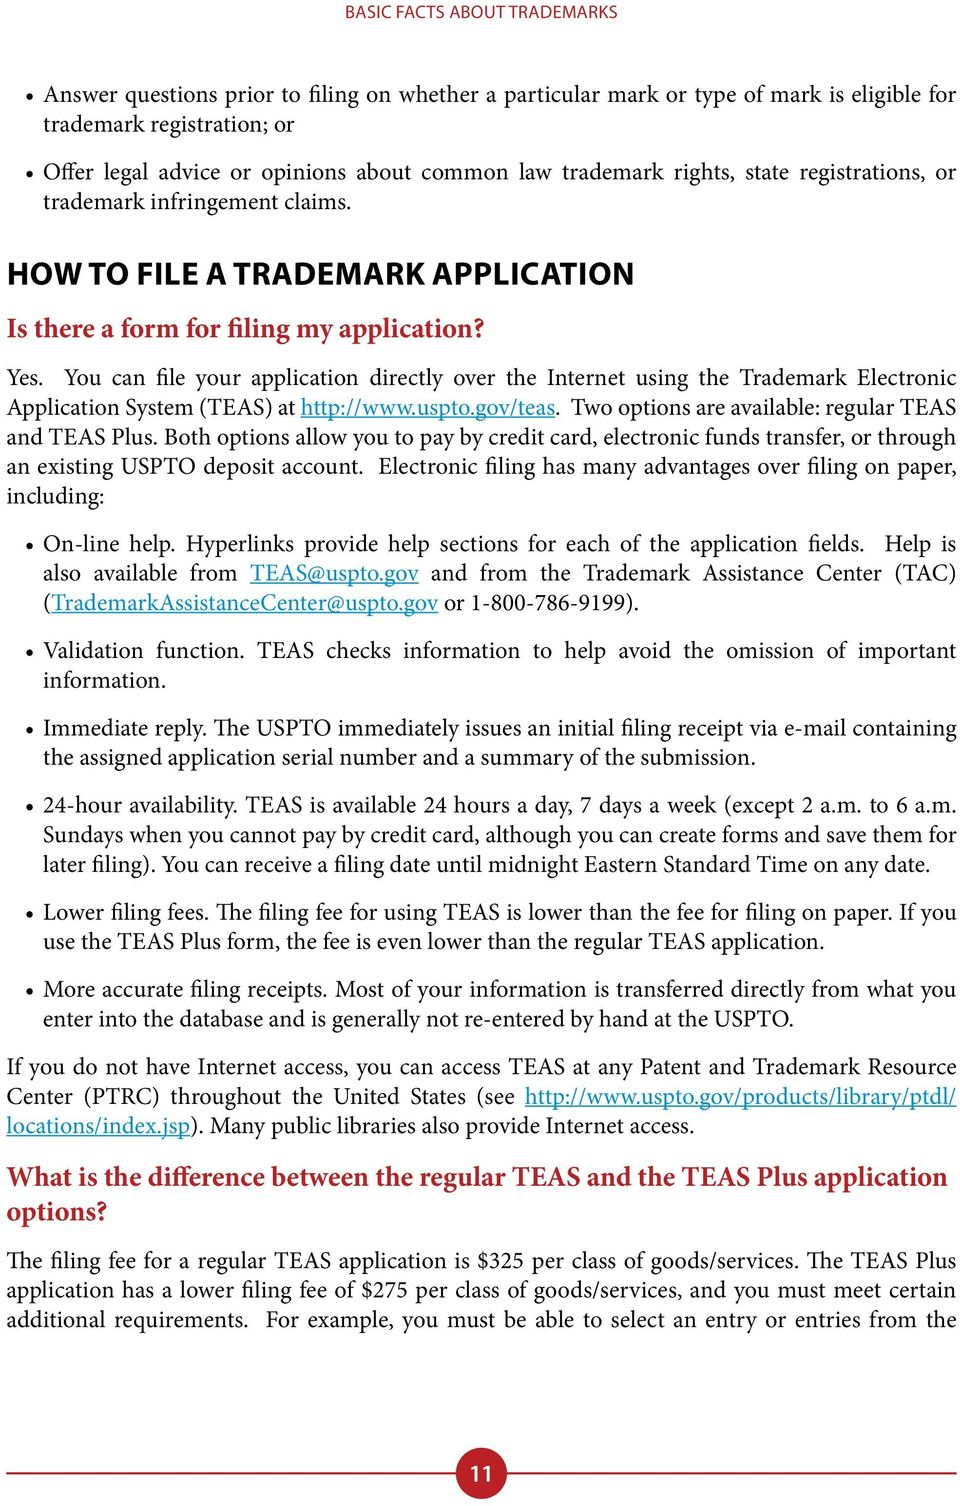 You can file your application directly over the Internet using the Trademark Electronic Application System (TEAS) at http://www.uspto.gov/teas. Two options are available: regular TEAS and TEAS Plus.